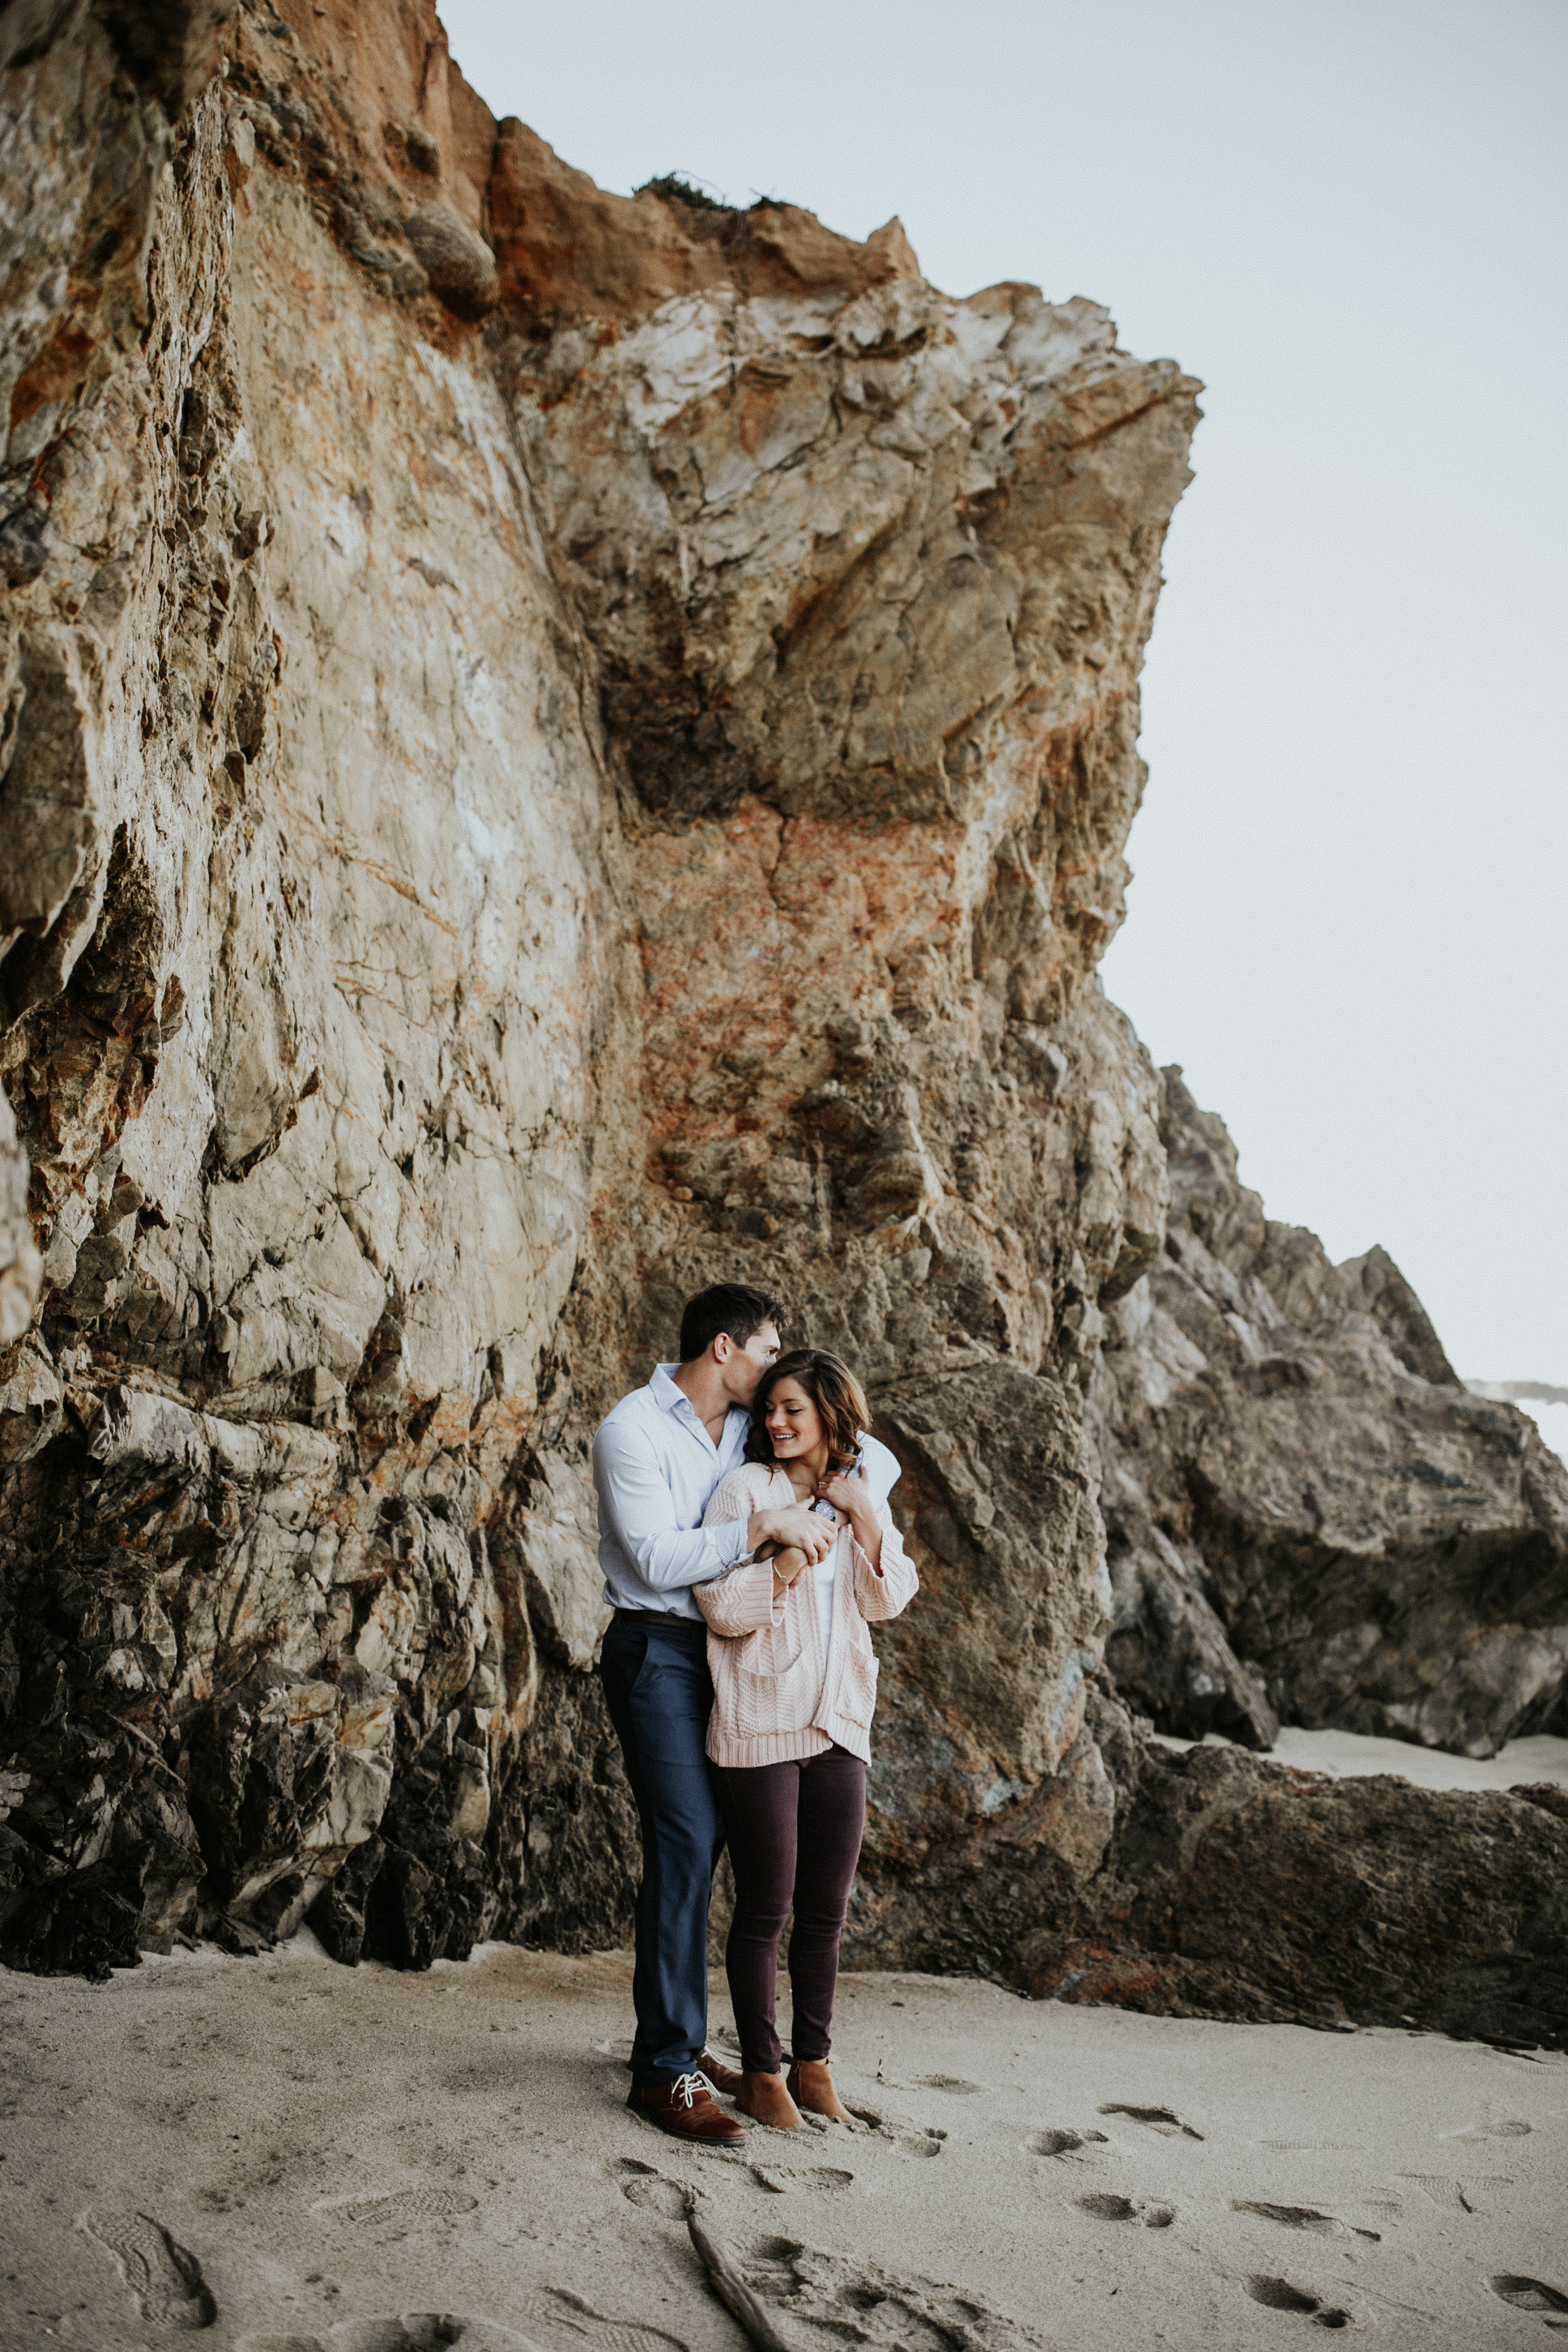 gracetphotography-destination-wedding-photographer-bigsur-adventure-elopement-7.jpg